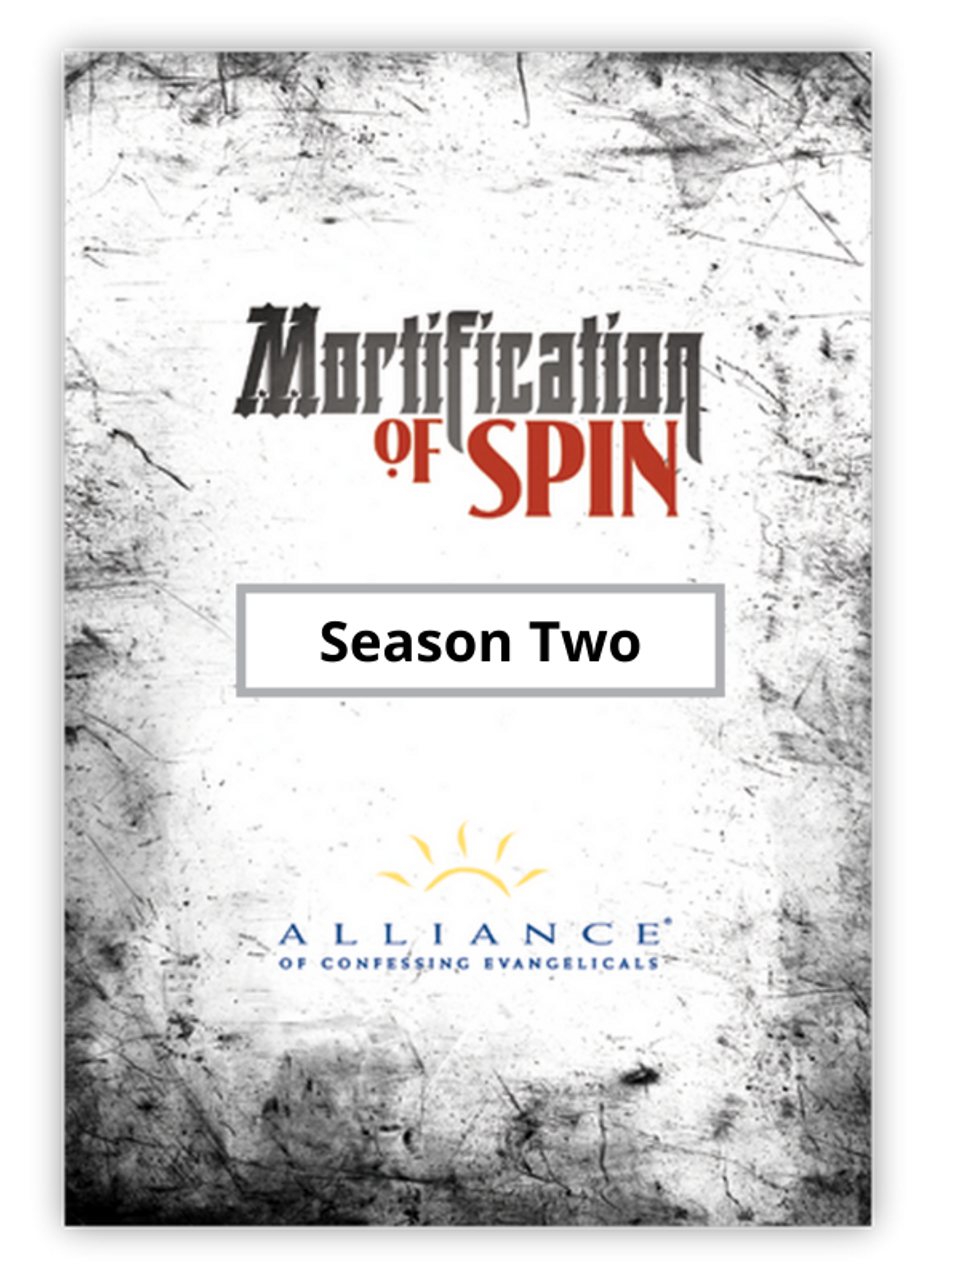 Mortification of Spin 2nd Season (mp3 Disc)